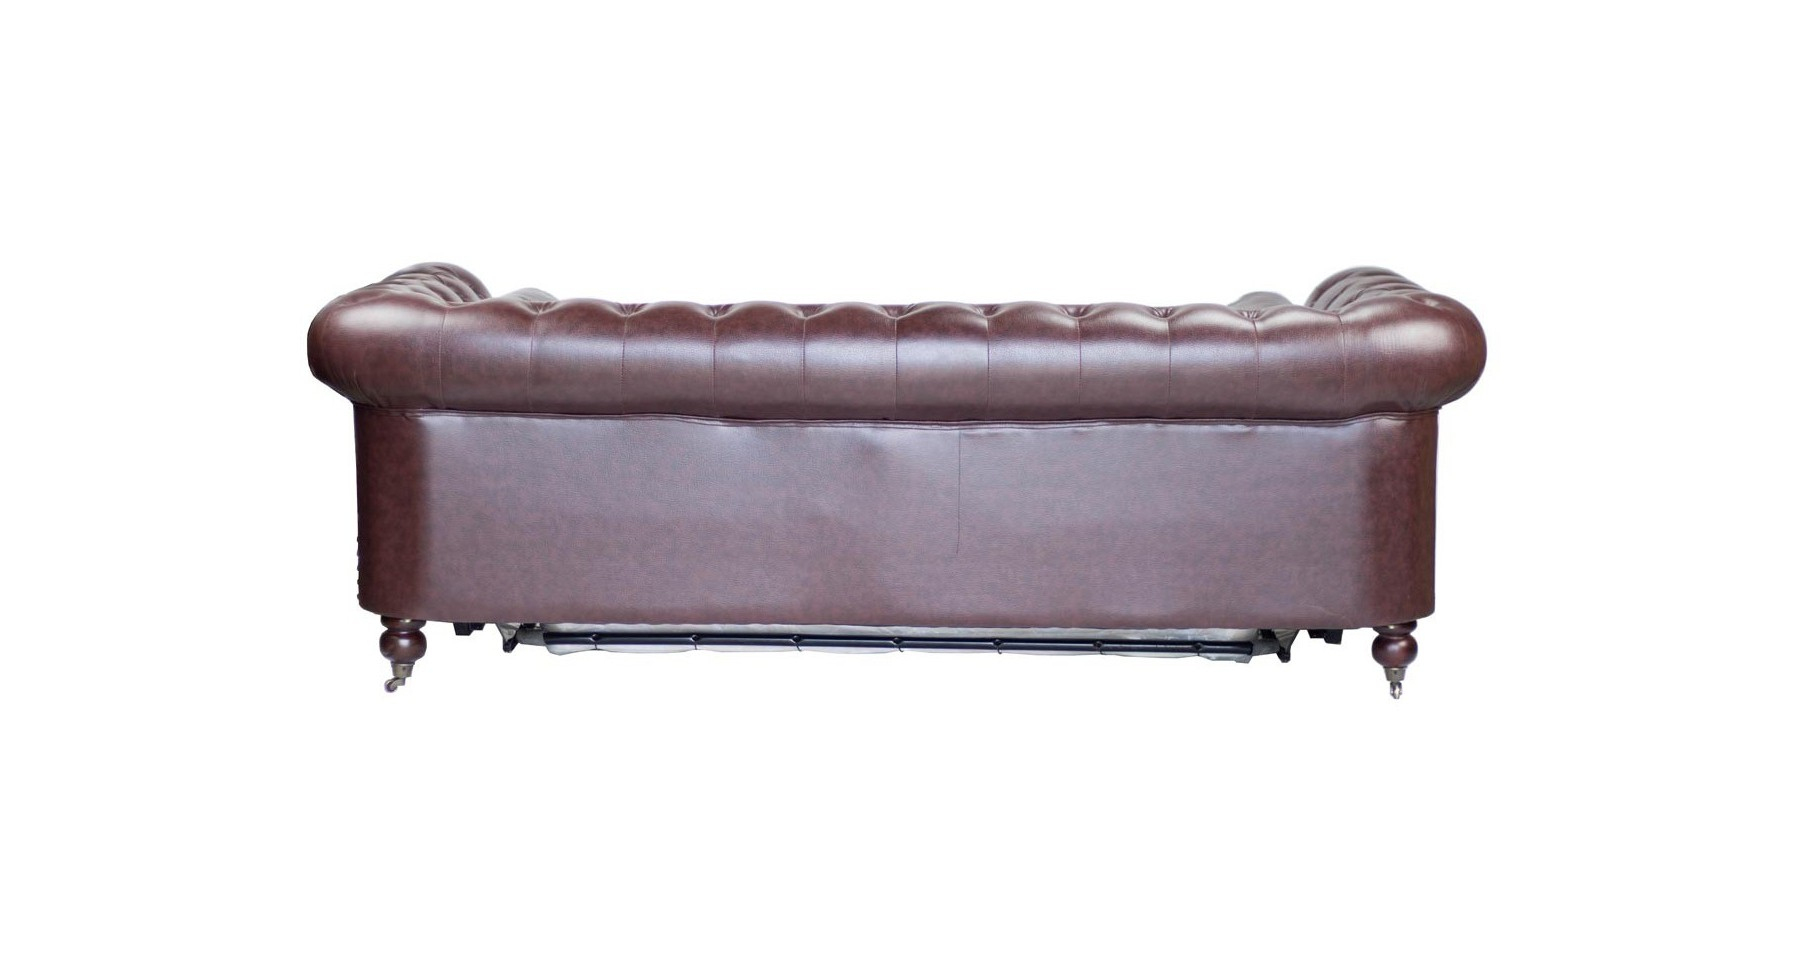 Canapé Chesterfield Convertible Couchage 160 En Cuir Poole pour Canape Chesterfield Convertible